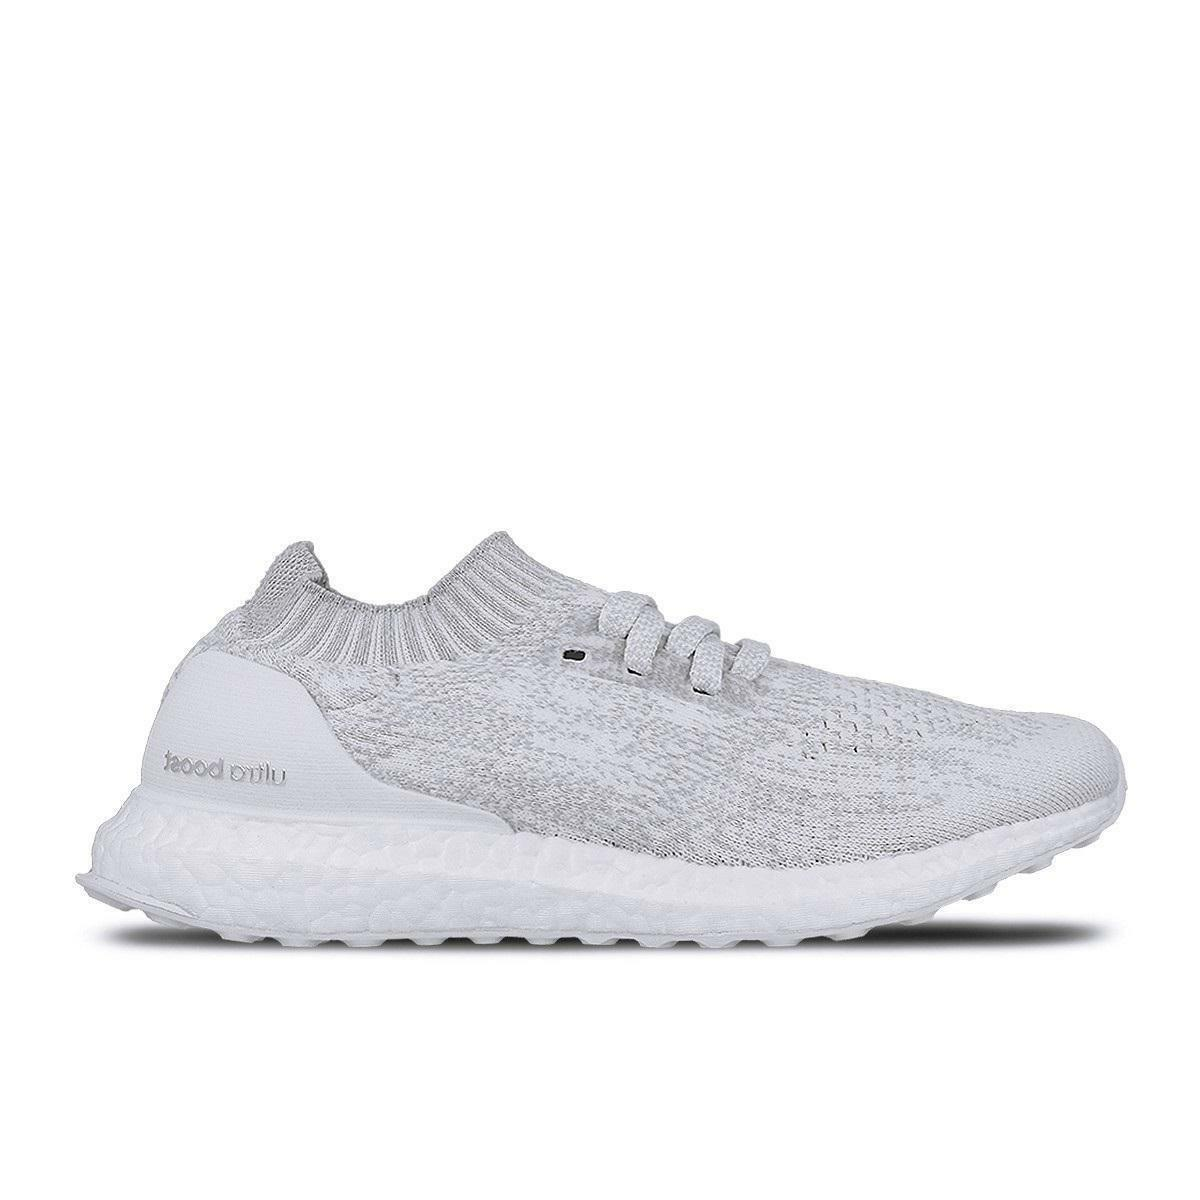 Women's ADIDAS ULTRABOOST UNCAGED W White Running Trainers S80780 SZ 8.5